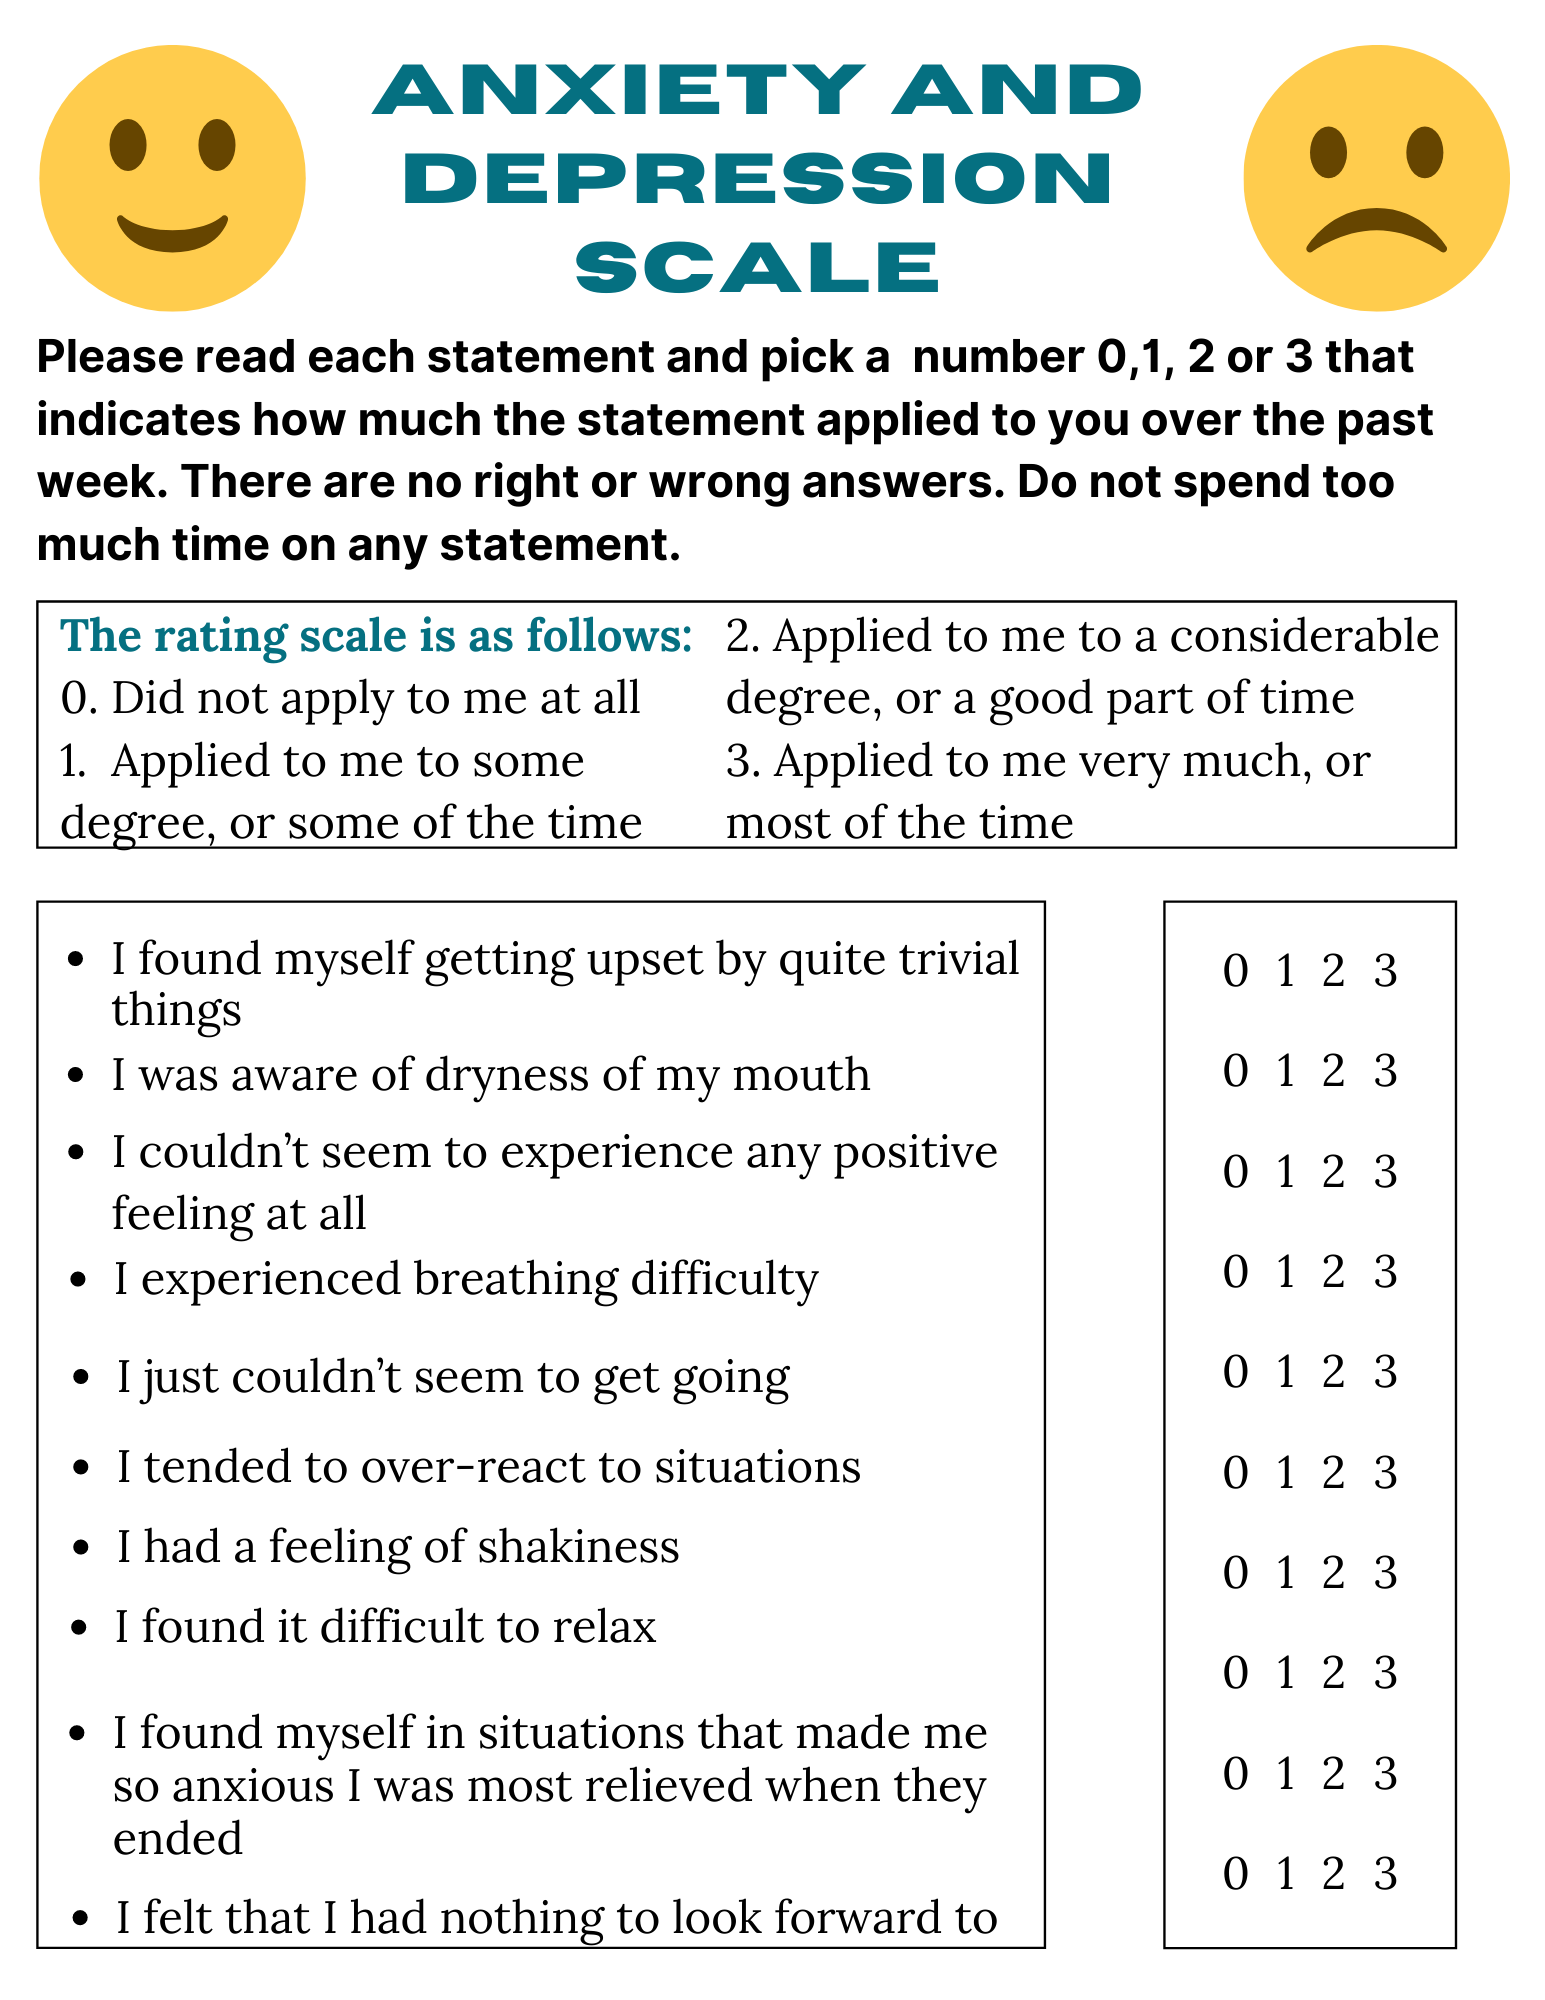 anxiety and depression scale